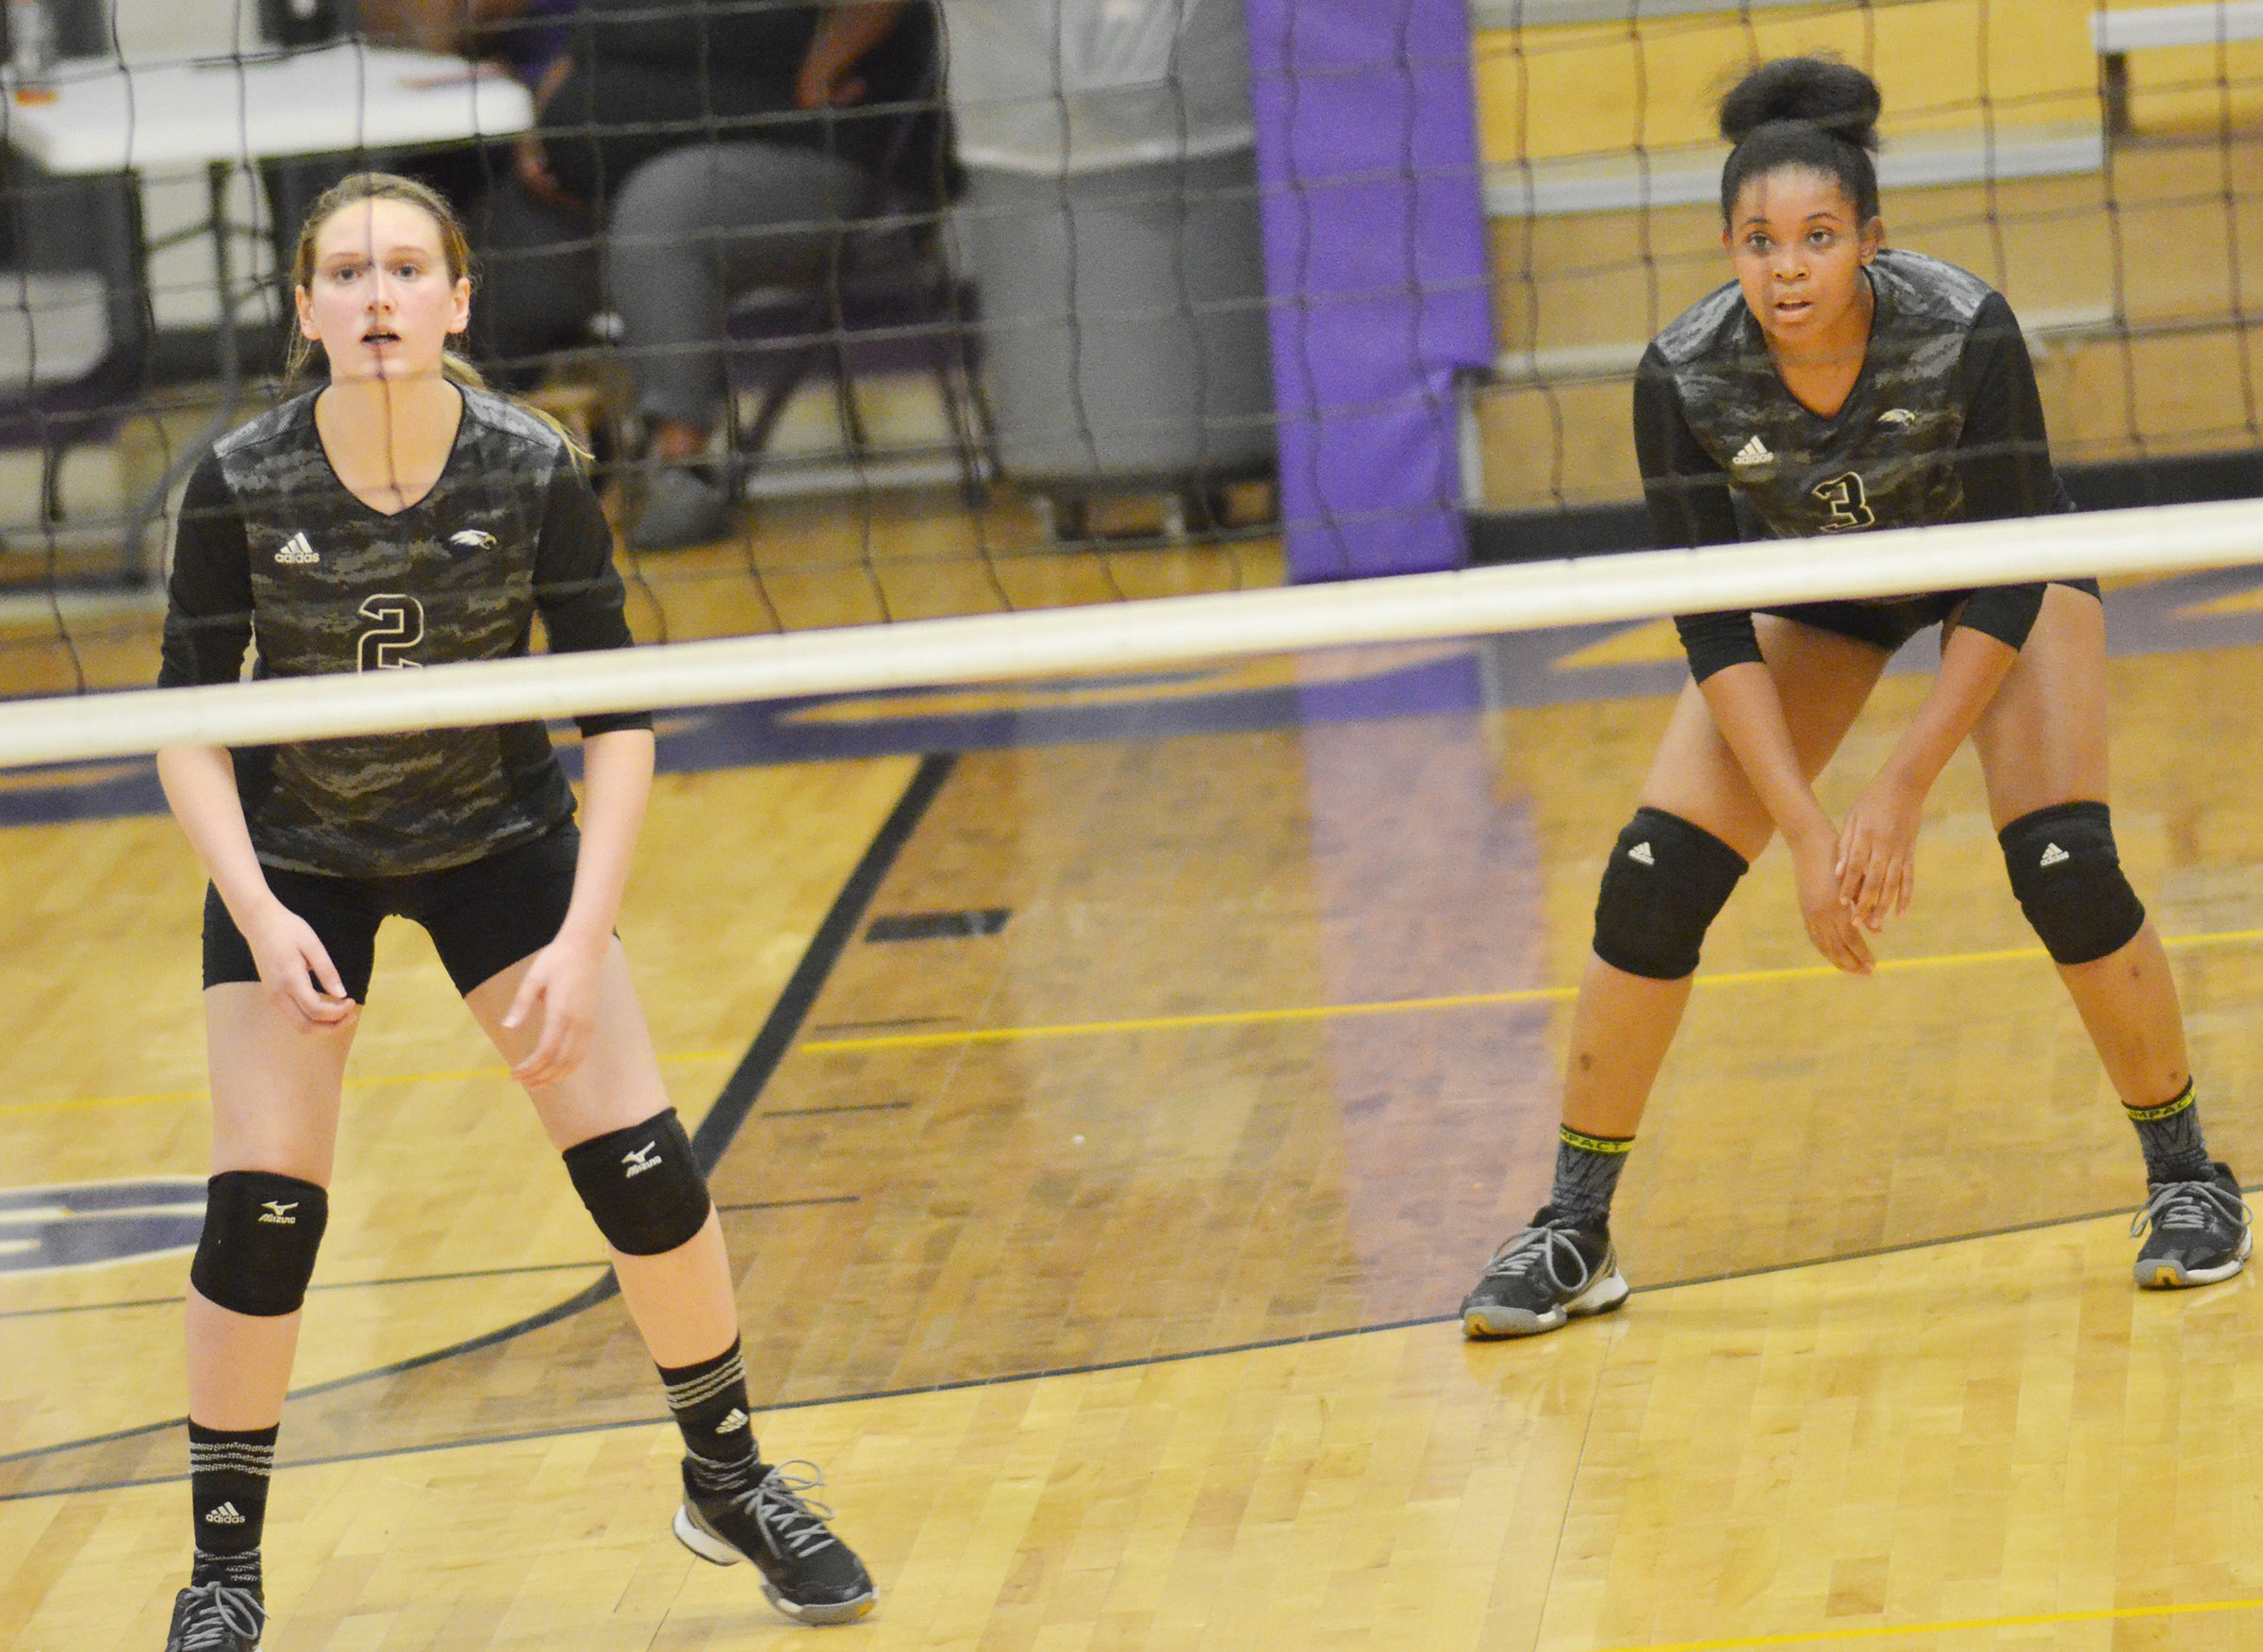 CHS freshman Zoie Sidebottom, at left, and senior Vonnea Smith watch the ball.